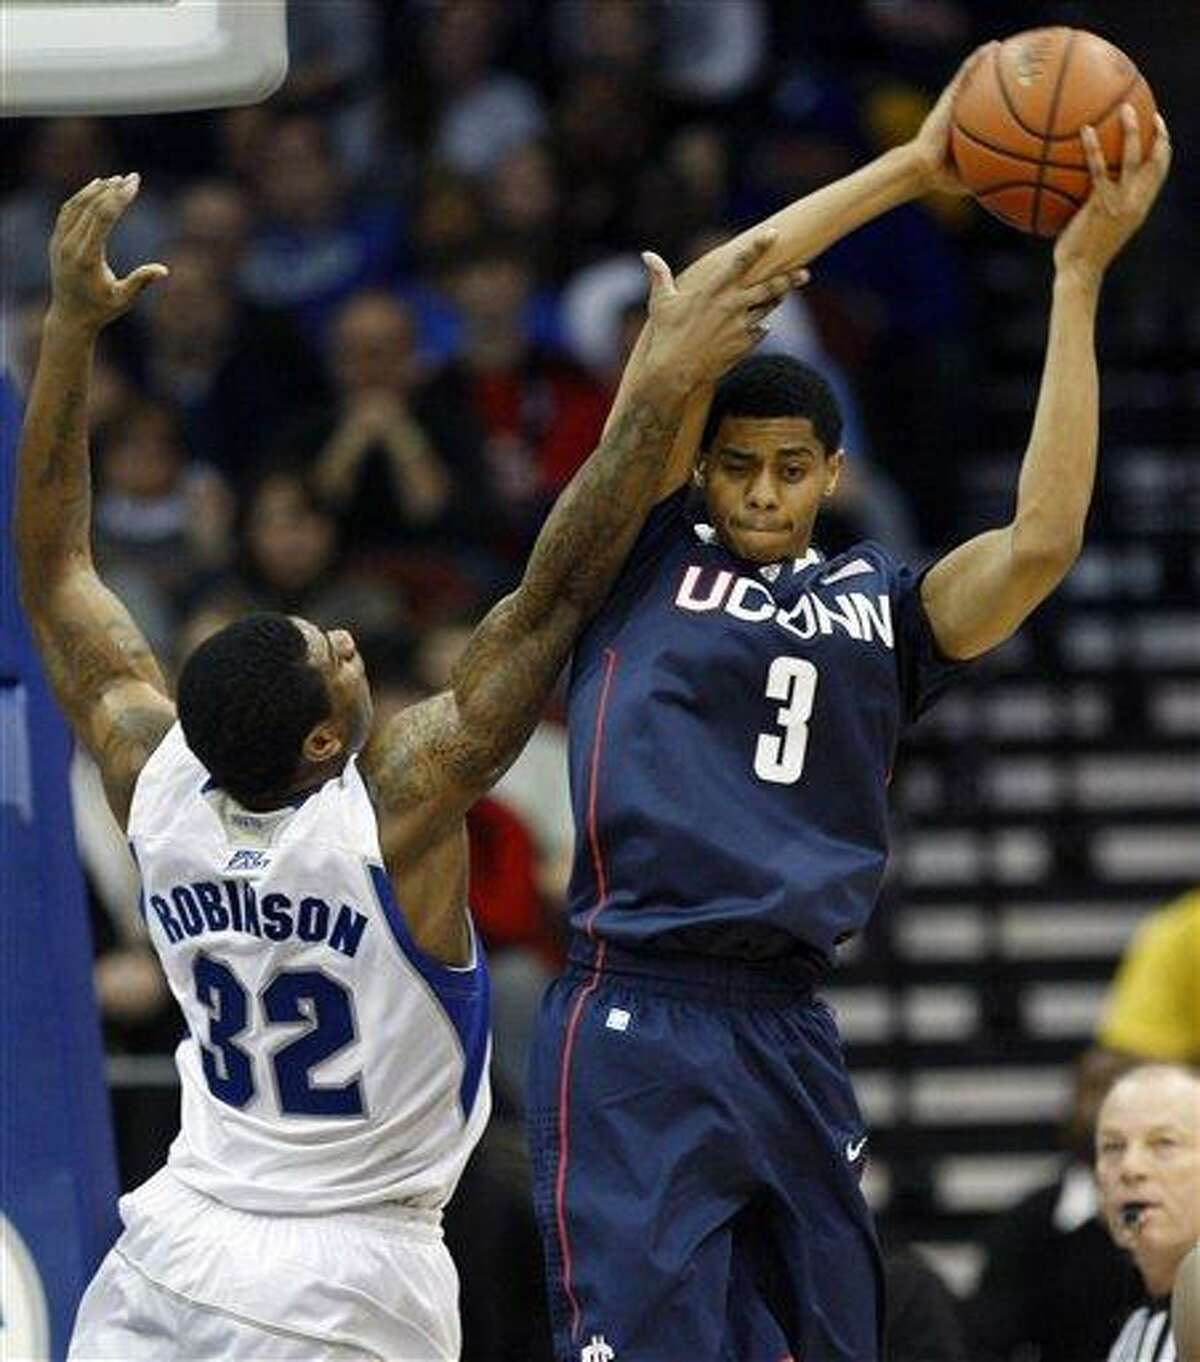 Seton Hall's Jeff Robinson (32) tries to block the path of Connecticut's Jeremy Lamb (3) during the first half of an NCAA college basketball game Saturday, Feb. 5, 2011, in Newark, NJ (AP Photo/Mel Evans)